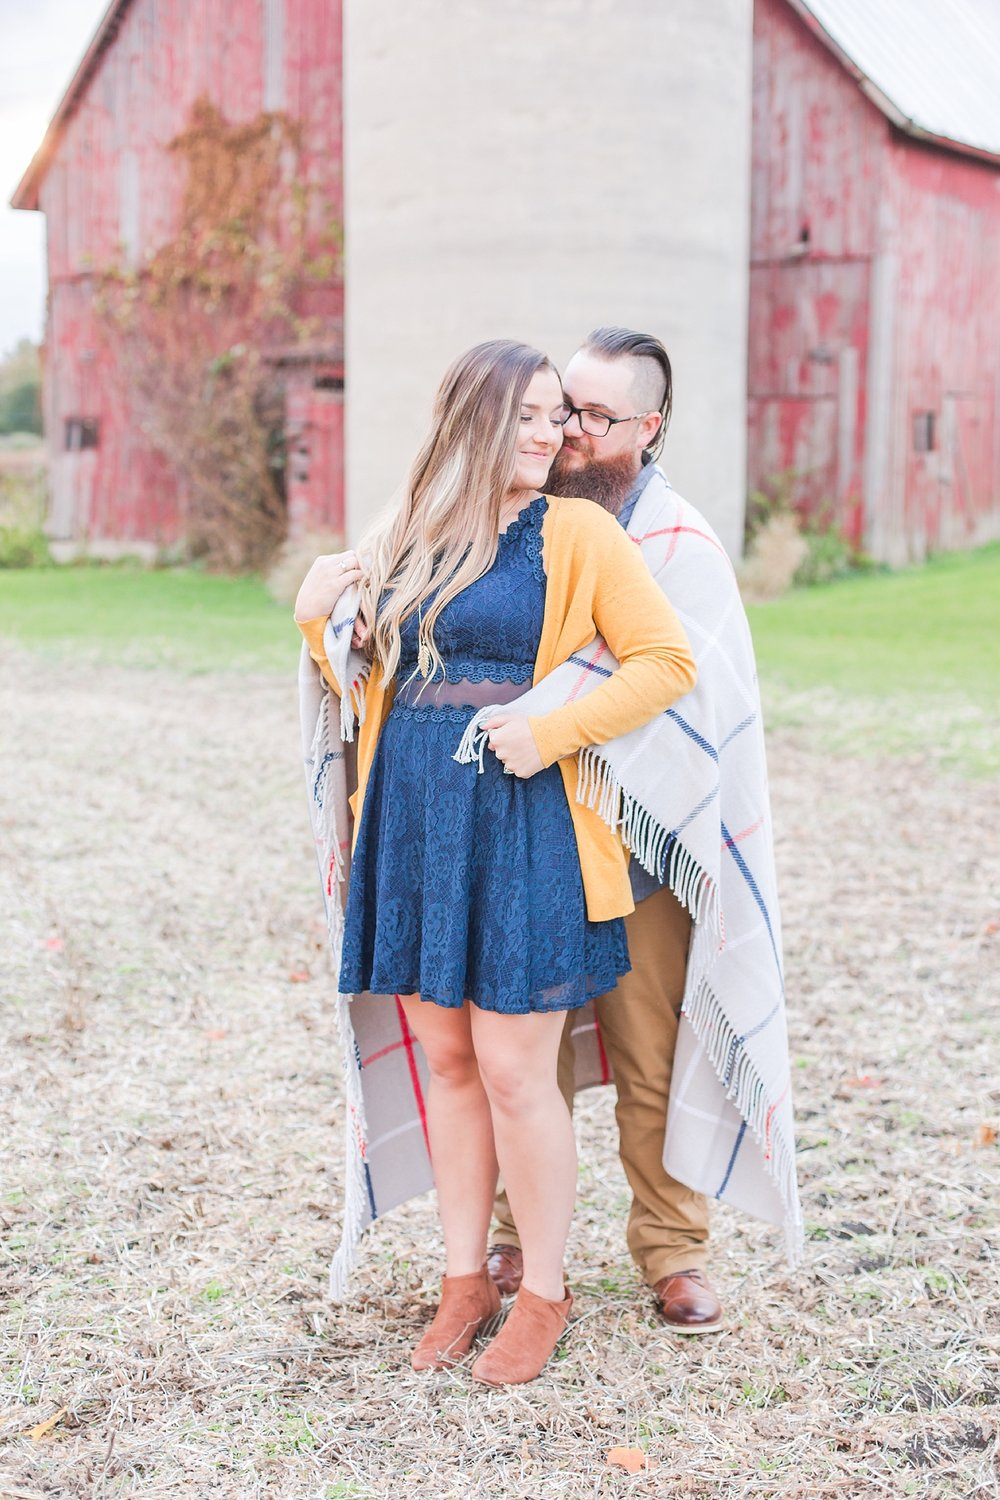 cozy-fall-engagement-photos-at-an-old-family-farm-in-monroe-michigan-by-courtney-carolyn-photography_0022.jpg